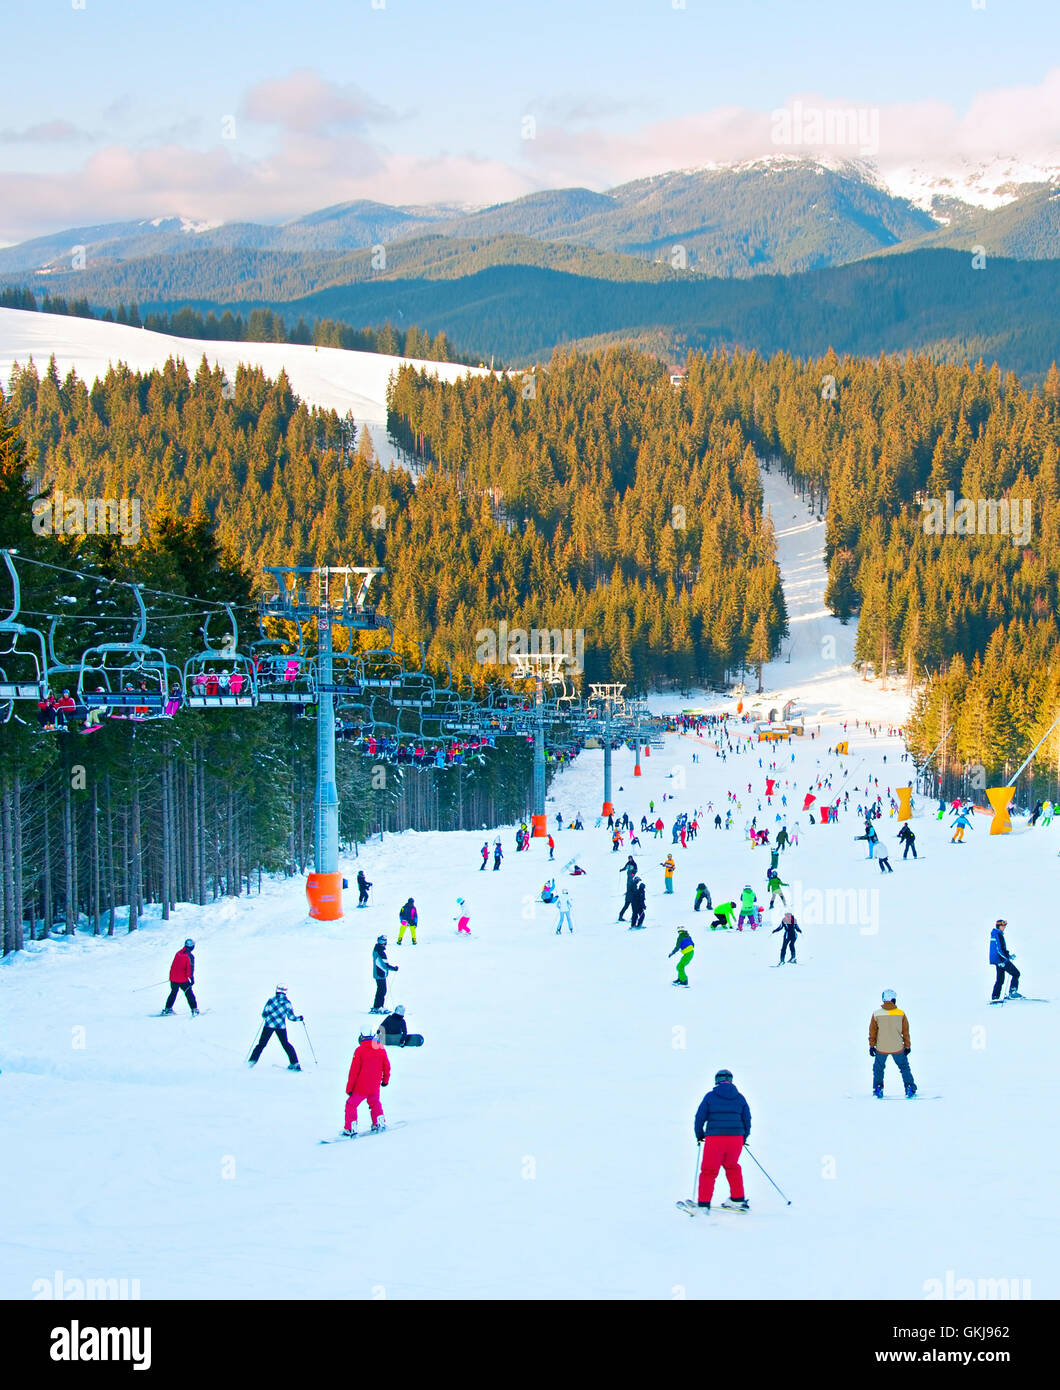 People skiing and snowboarding on a slope at ski resort - Stock Image